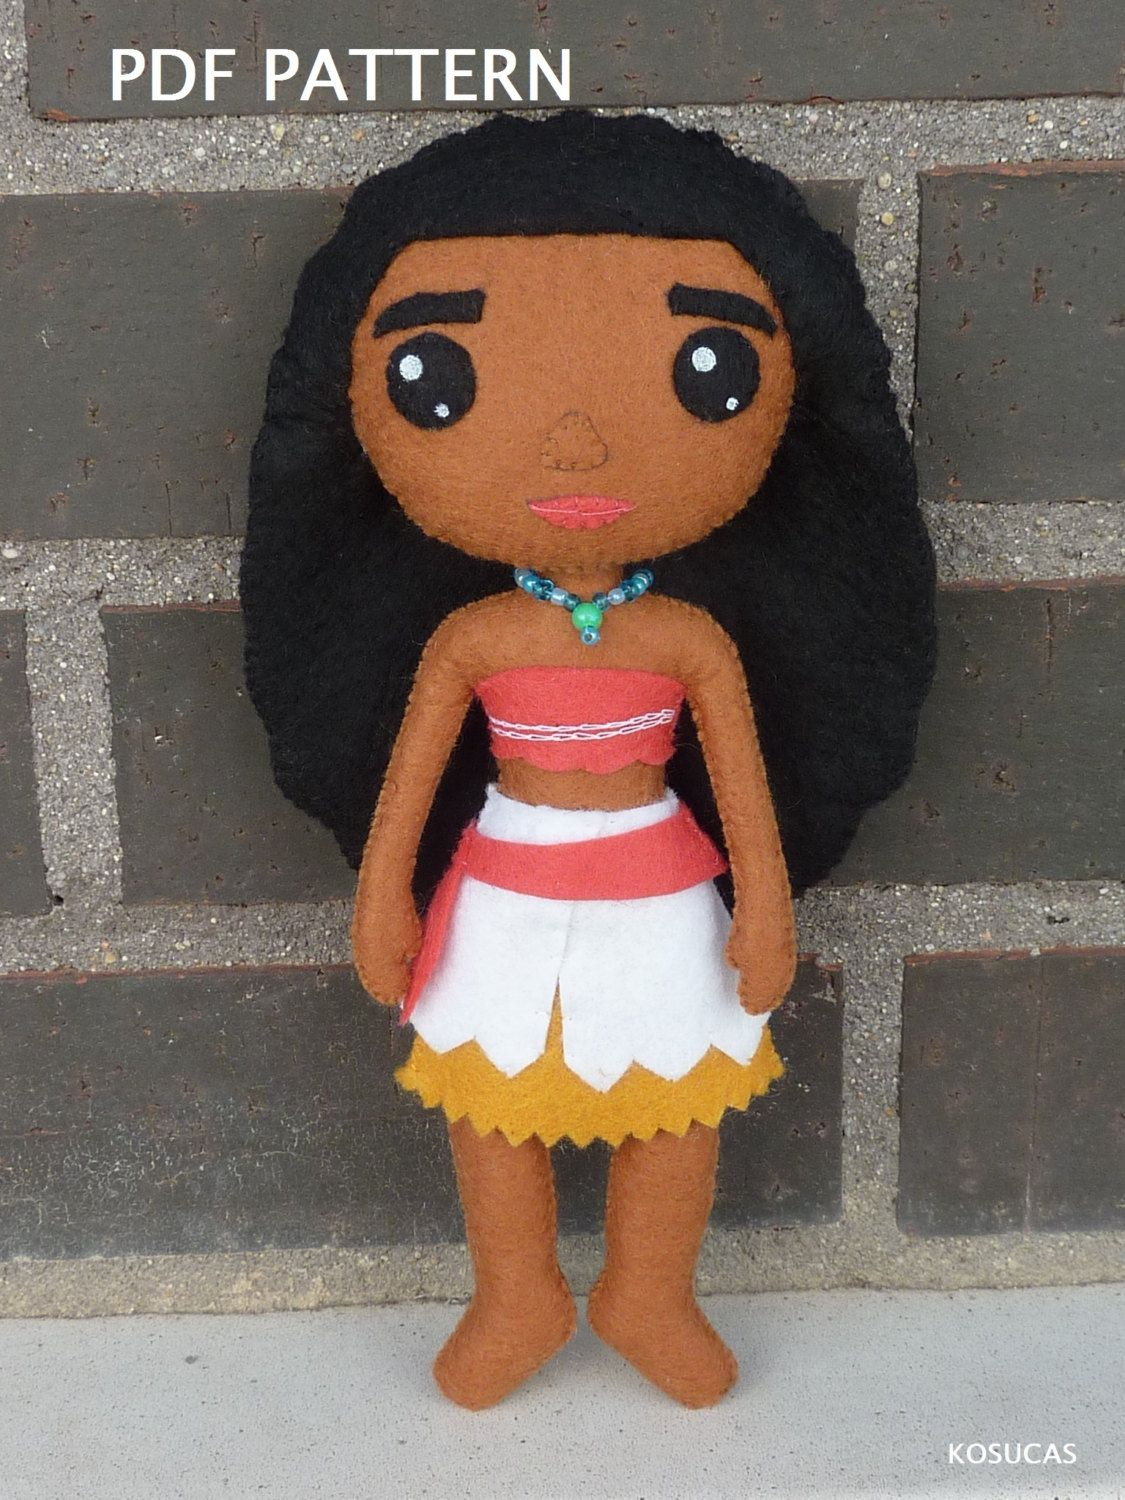 PDF pattern to make a doll inspired in Moana (Vaiana) | Pinterest ...